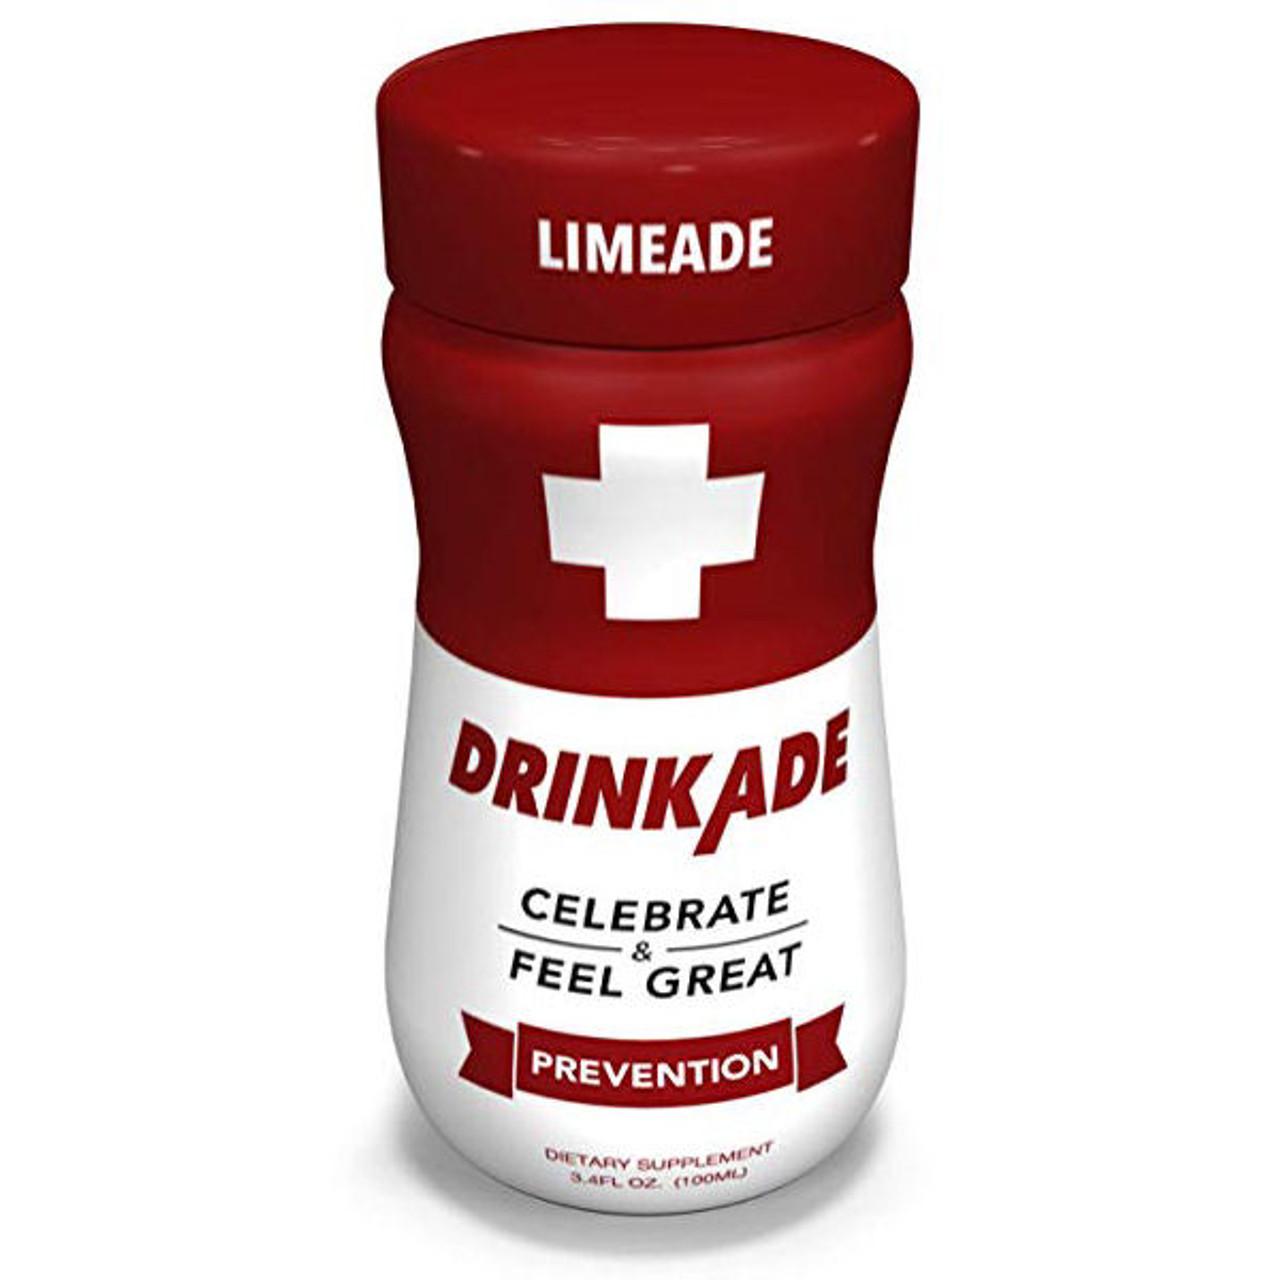 DrinkAde Limeade Prevention SINGLE BOTTLE (RED)